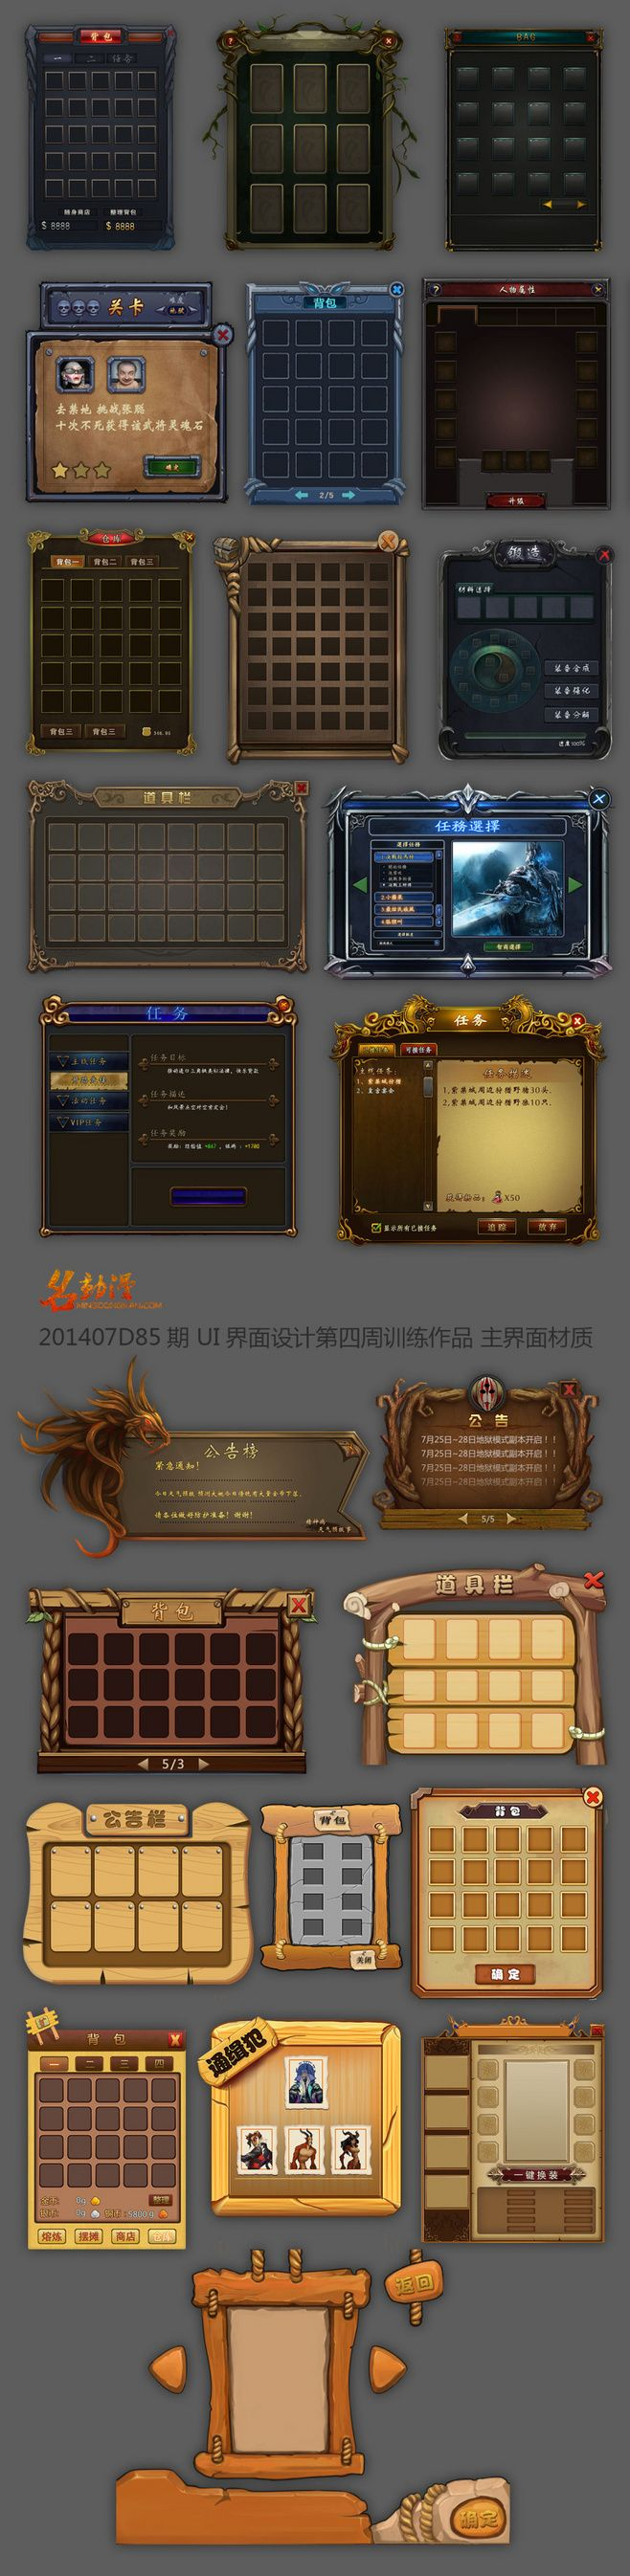 原创作品:游戏UI作品——功能图标,徽章... game user interface gui ui | Create your own roleplaying game material w/ RPG Bard: www.rpgbard.com | Writing inspiration for Dungeons and Dragons DND D&D Pathfinder PFRPG Warhammer 40k Star Wars Shadowrun Call of Cthulhu Lord of the Rings LoTR + d20 fantasy science fiction scifi horror design | Not Trusty Sword art: click artwork for source